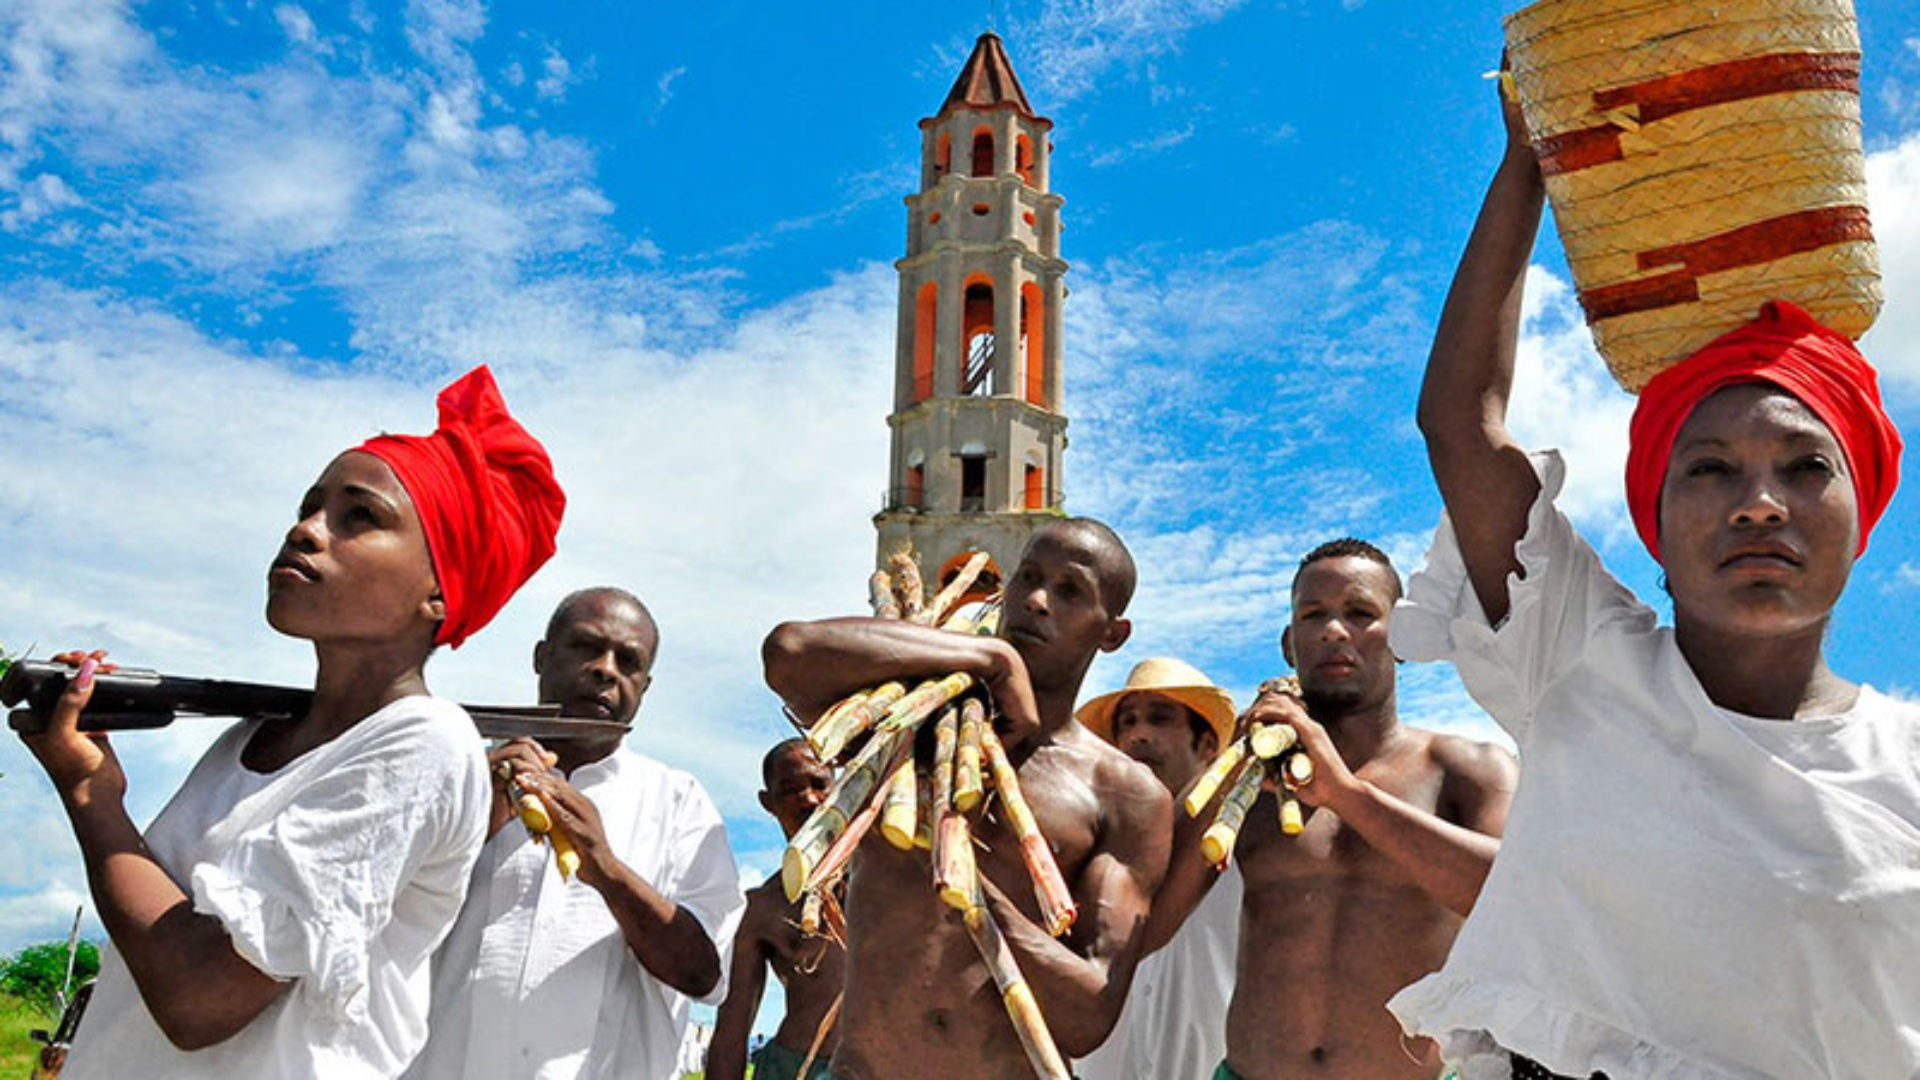 Discovering the African Heartbeat in Cuba